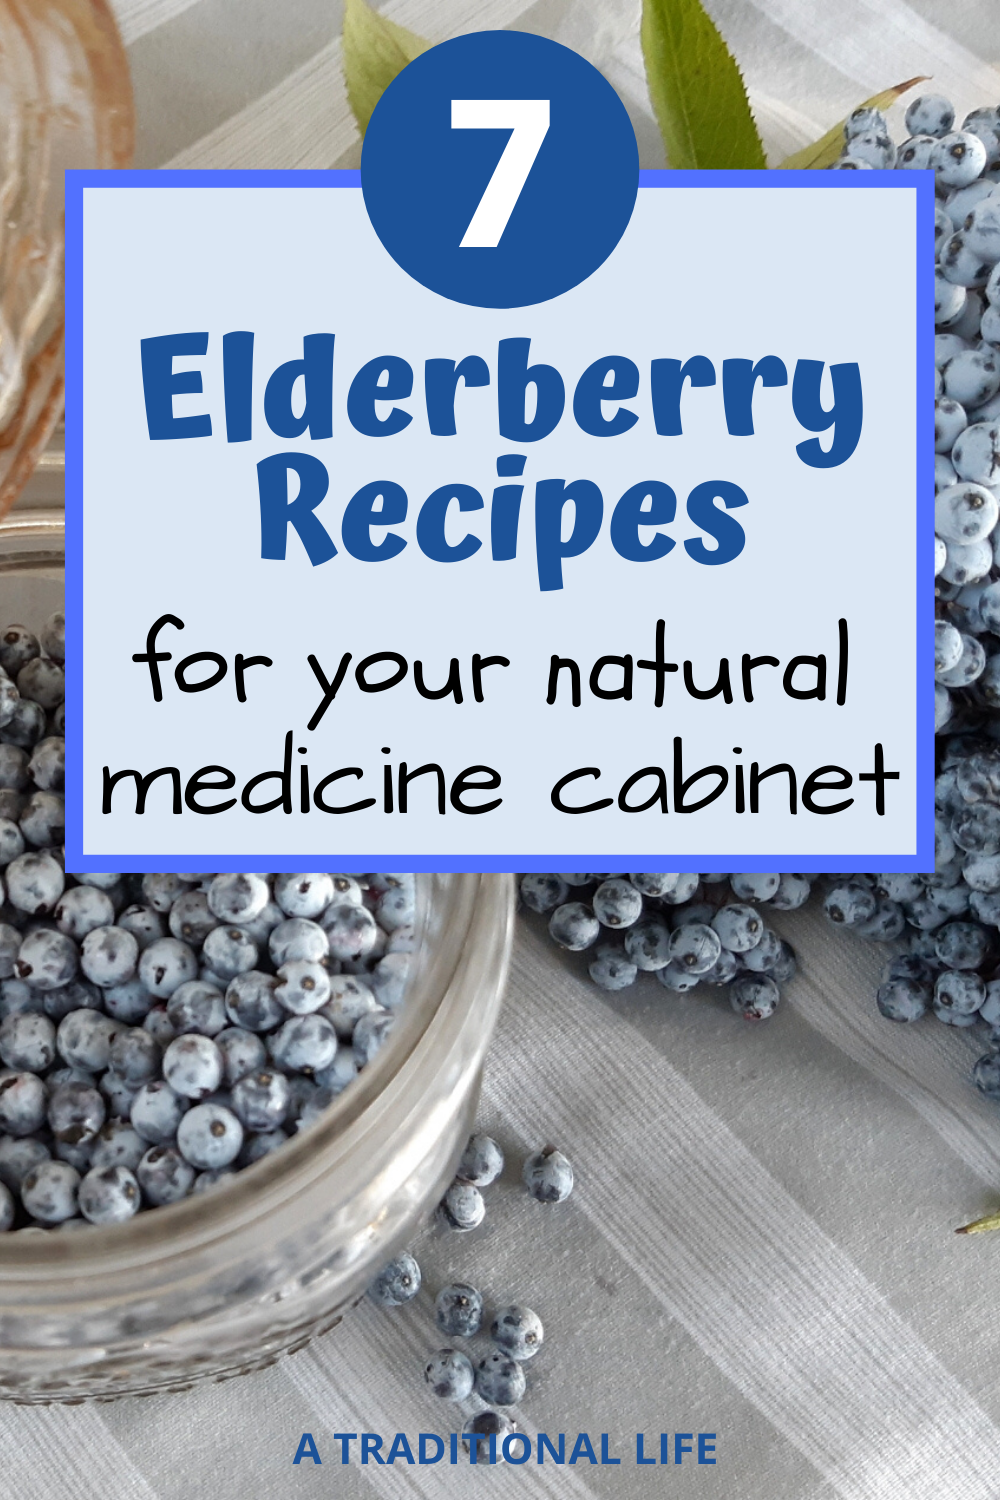 Want elderberry recipes? Get these 7 elderberry recipes for your natural medicine cabinet!